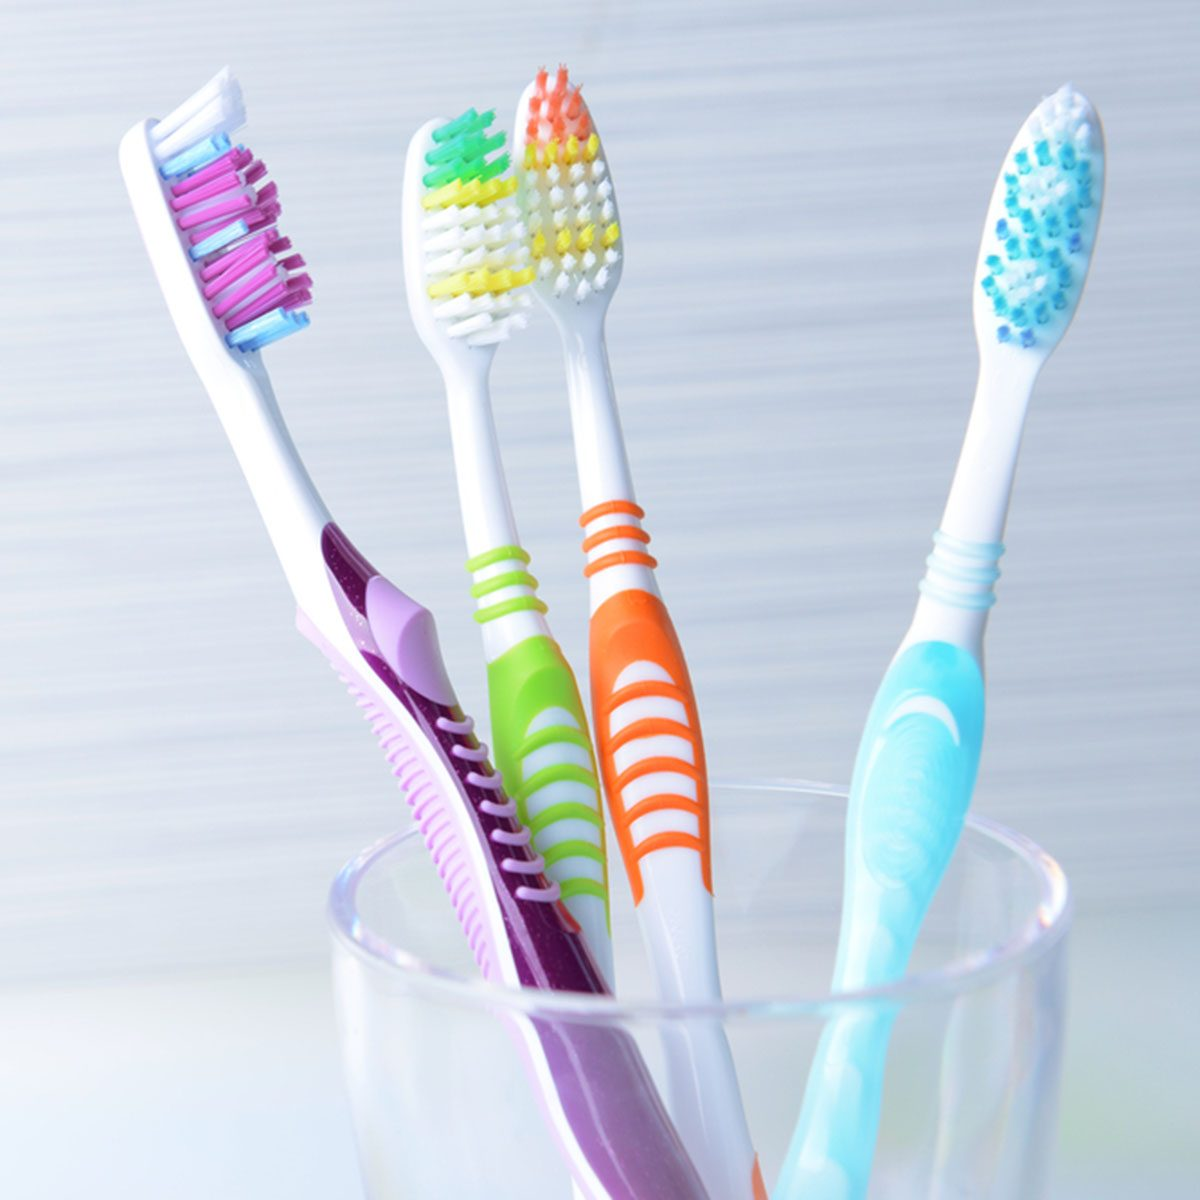 Toothbrushes in glass on table on light background; Shutterstock ID 194646521; Job (TFH, TOH, RD, BNB, CWM, CM): Taste of Home